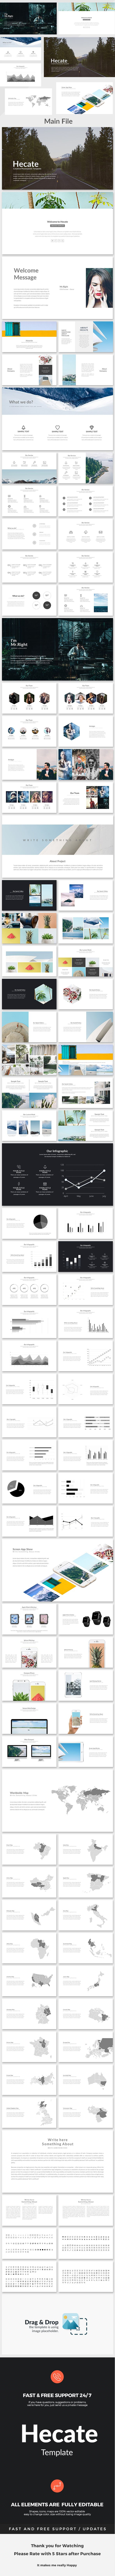 Hecate - Creative Powerpoint Template